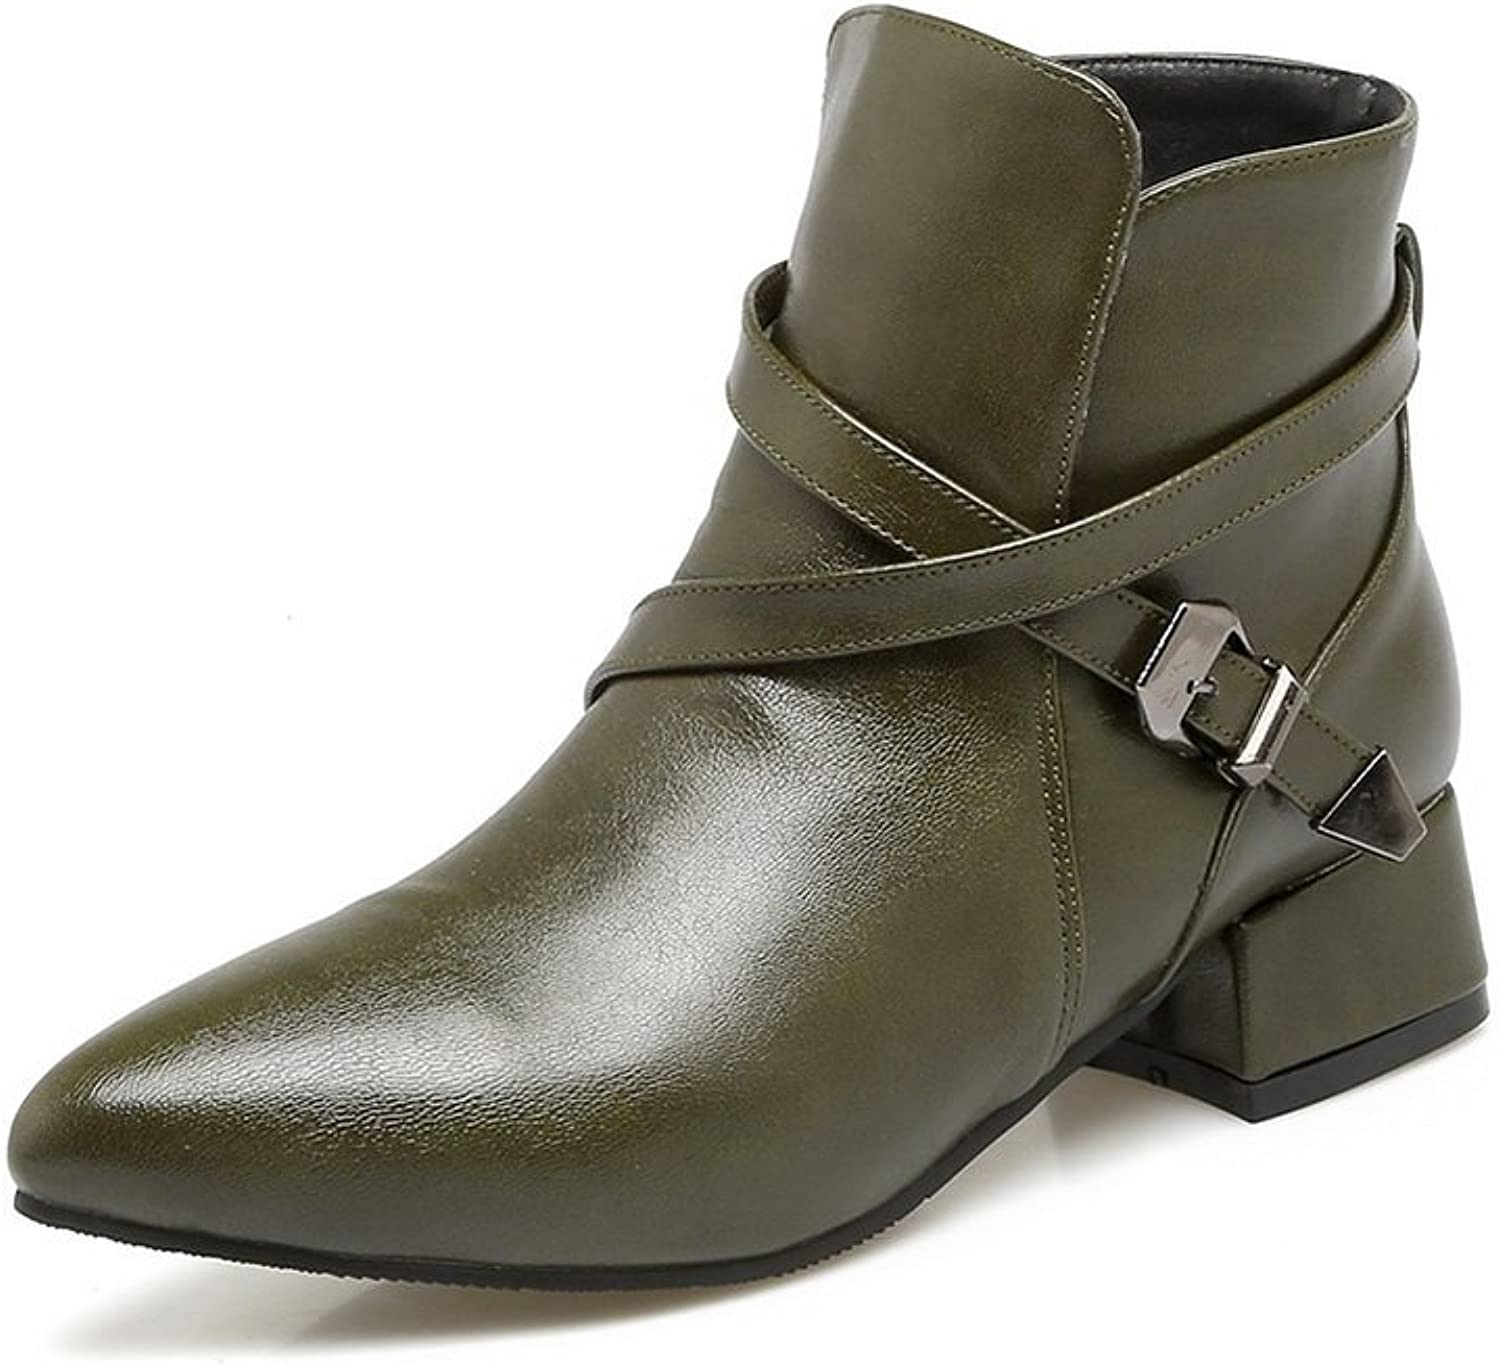 A&N Womens Pumps-shoes Closed-Toe No-Closure Adjustable-Strap Heeled Water_Resistant Warm Lining Bootie Smooth Leather Light-Weight Urethane Pumps shoes DKU01710